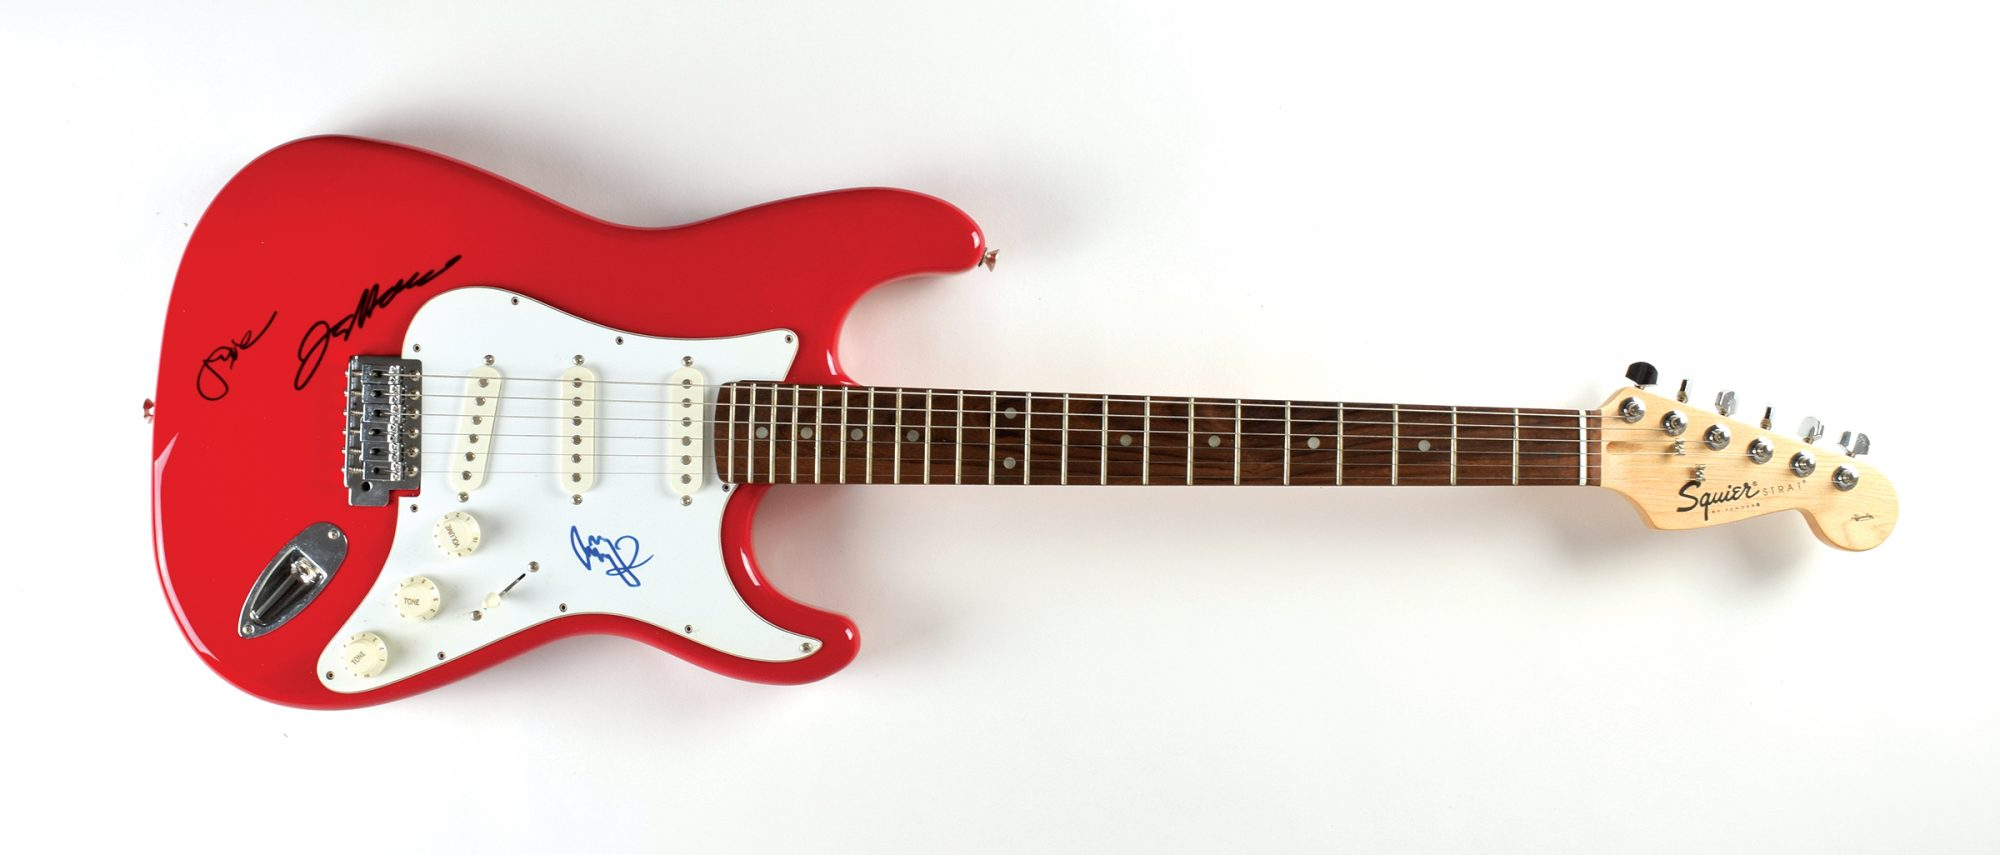 Stratocaster autographed by Eric Clapton Jeff Beck Jimmy Page John Brennan Collection RR Auction